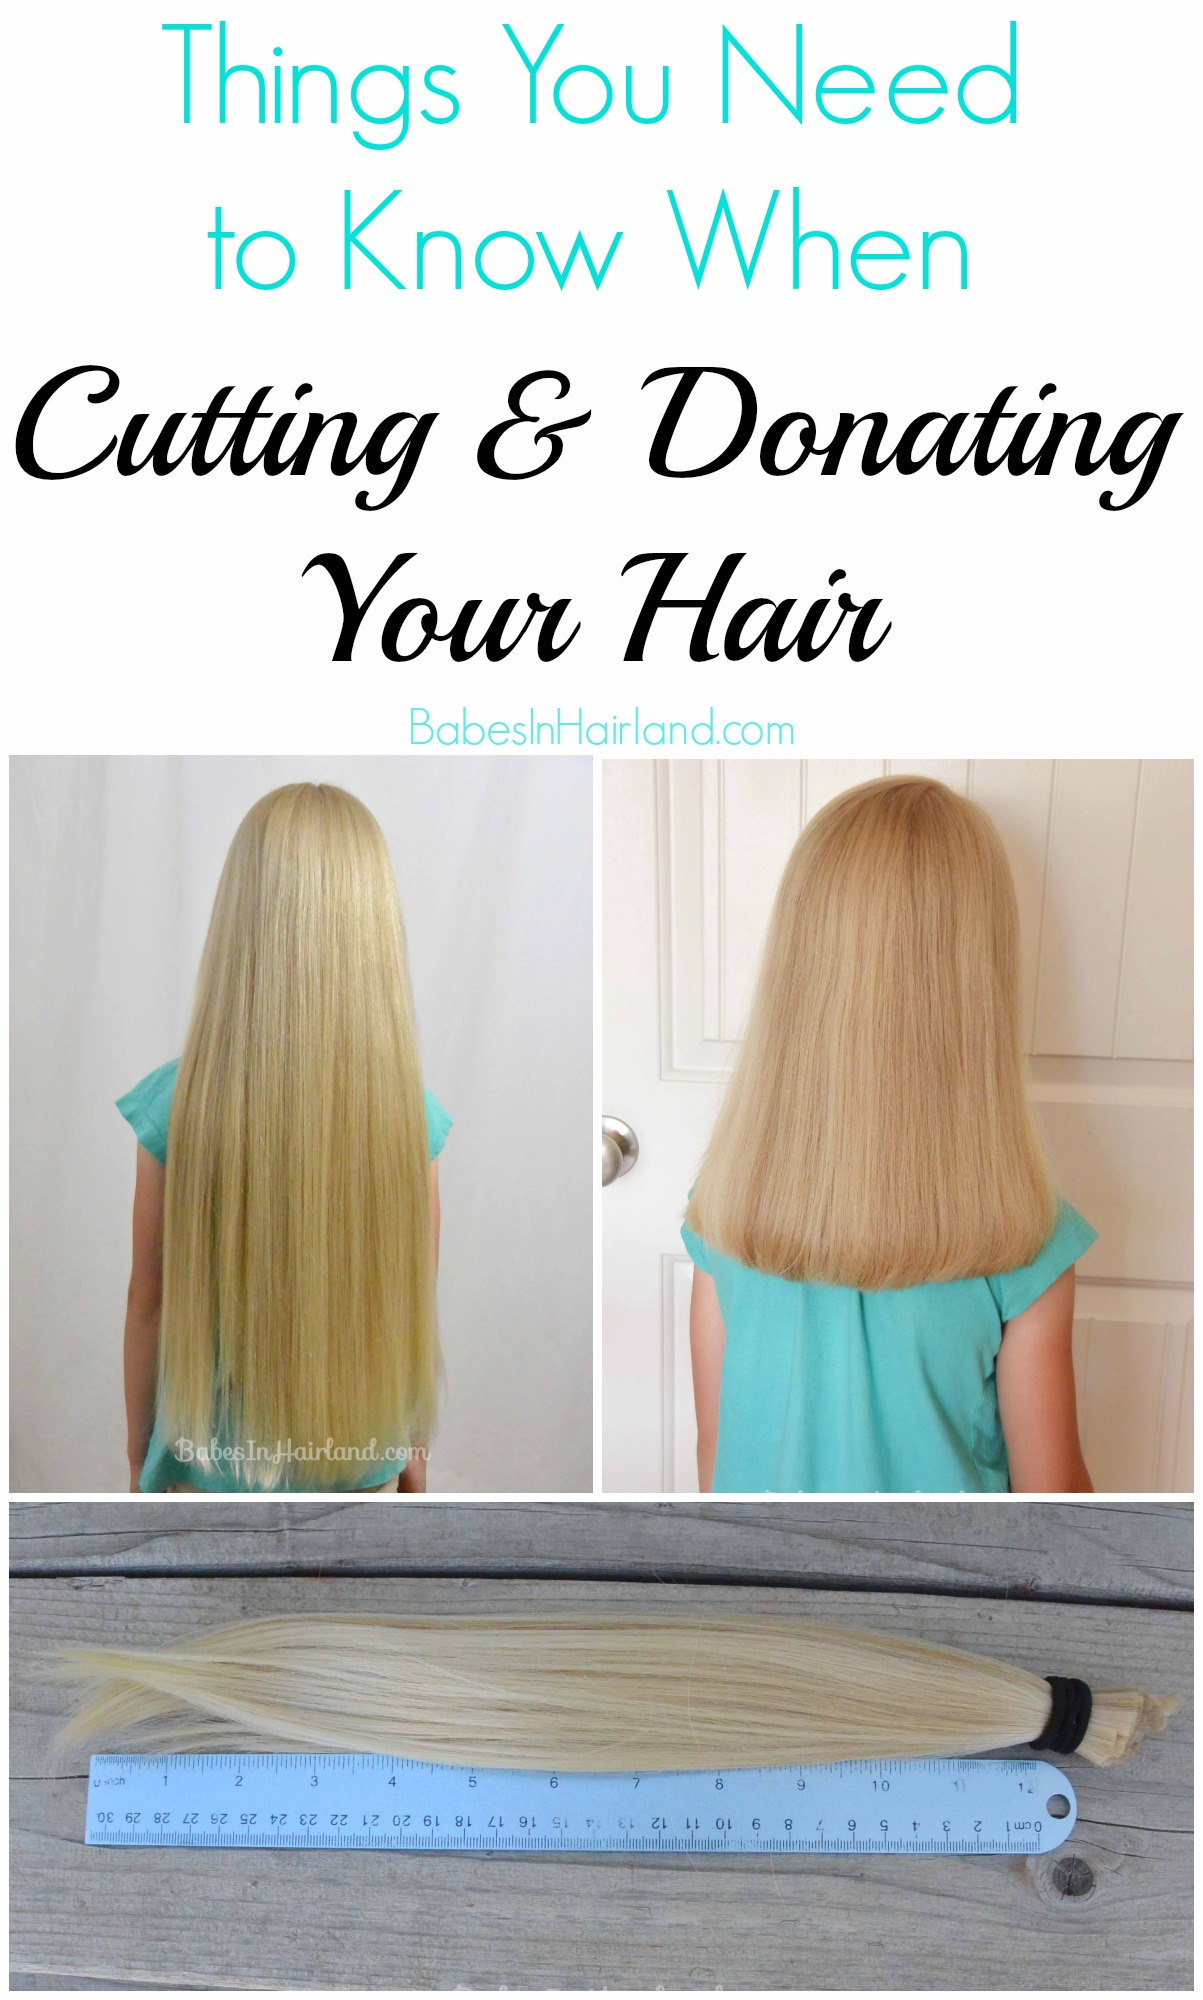 Things you need to know when cutting donating your hair for A little off the top salon